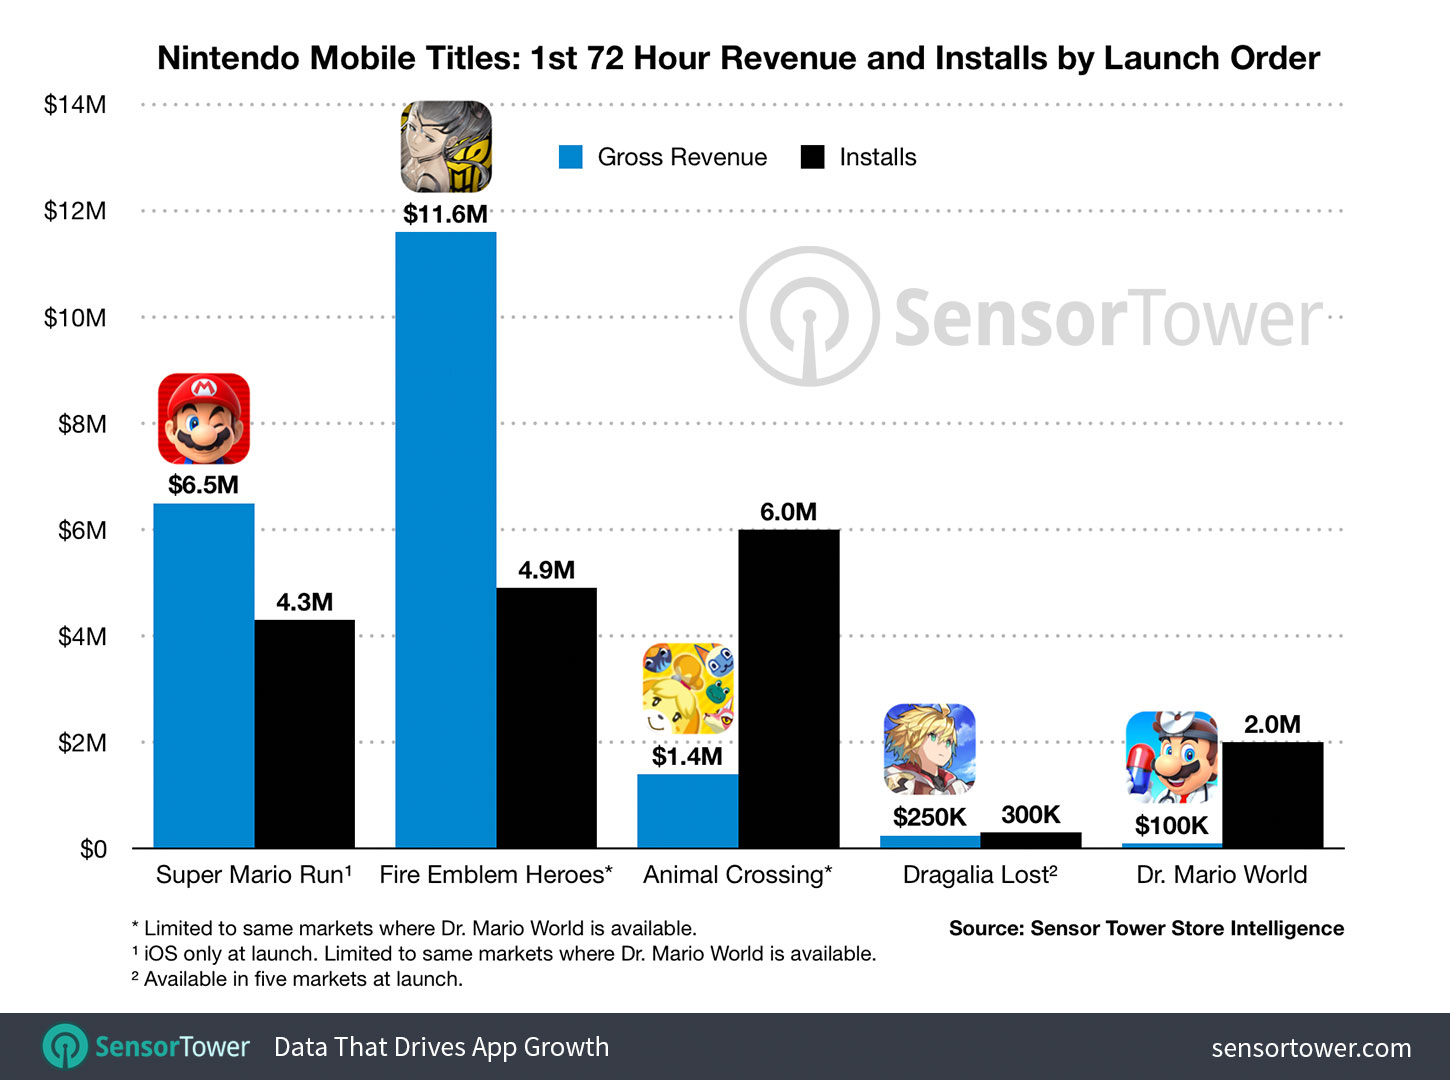 Dr Mario World is the lowest grossing Nintendo mobile launch